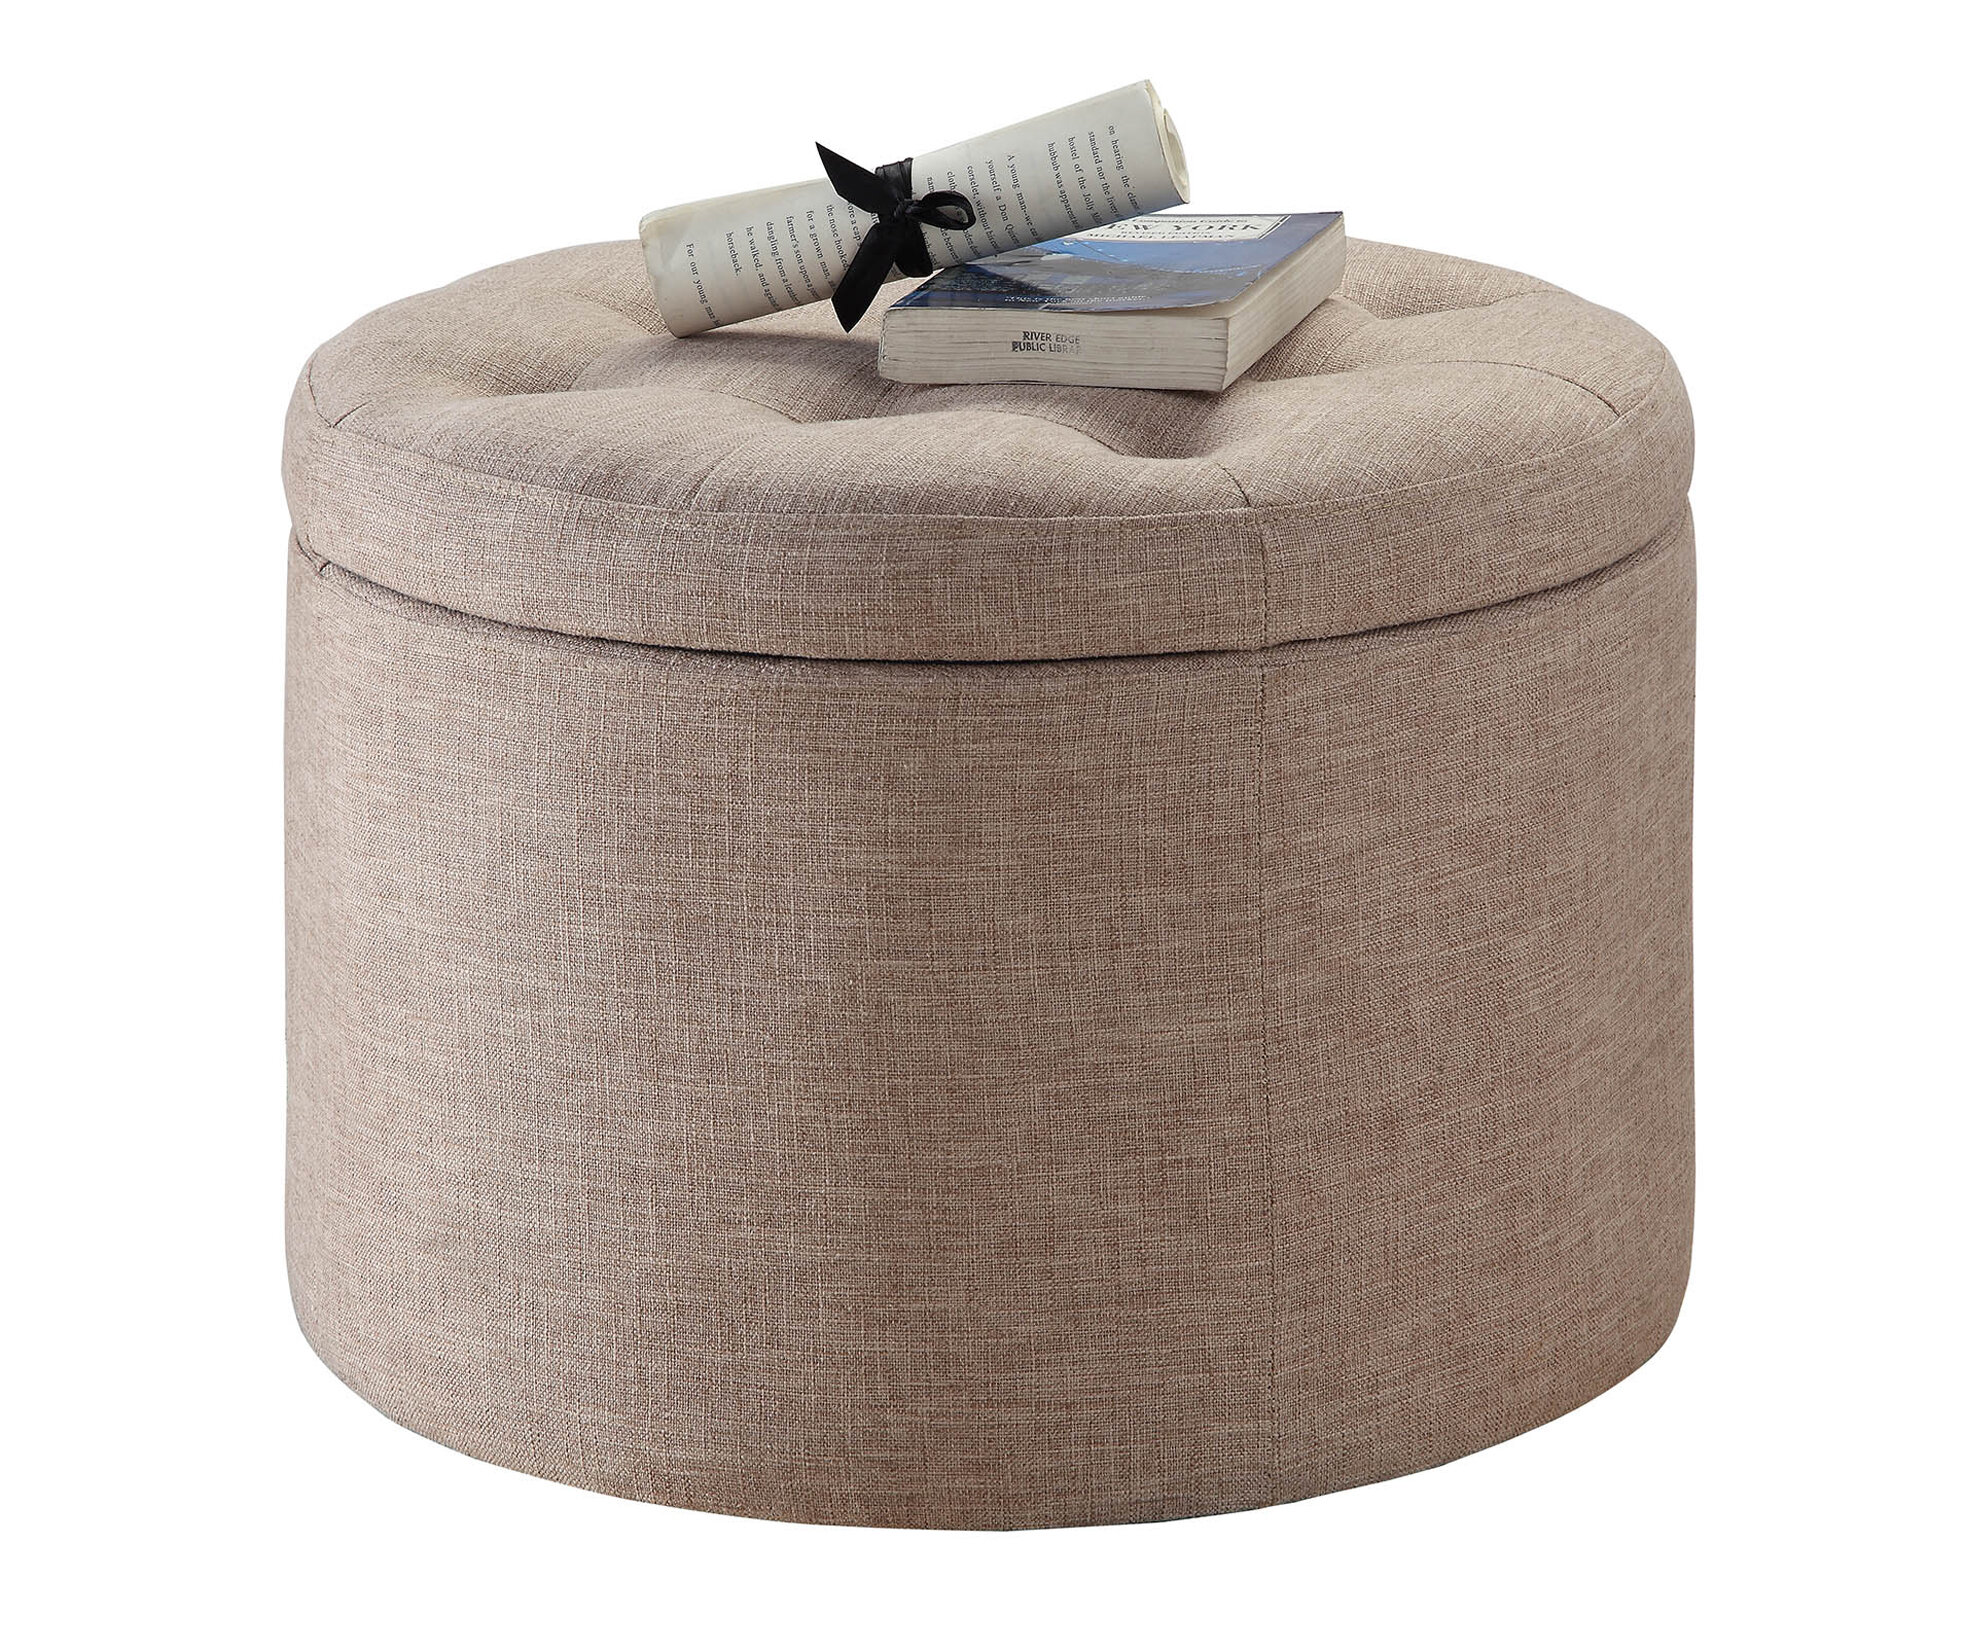 Admirable Stansell Tufted Storage Ottoman Gmtry Best Dining Table And Chair Ideas Images Gmtryco